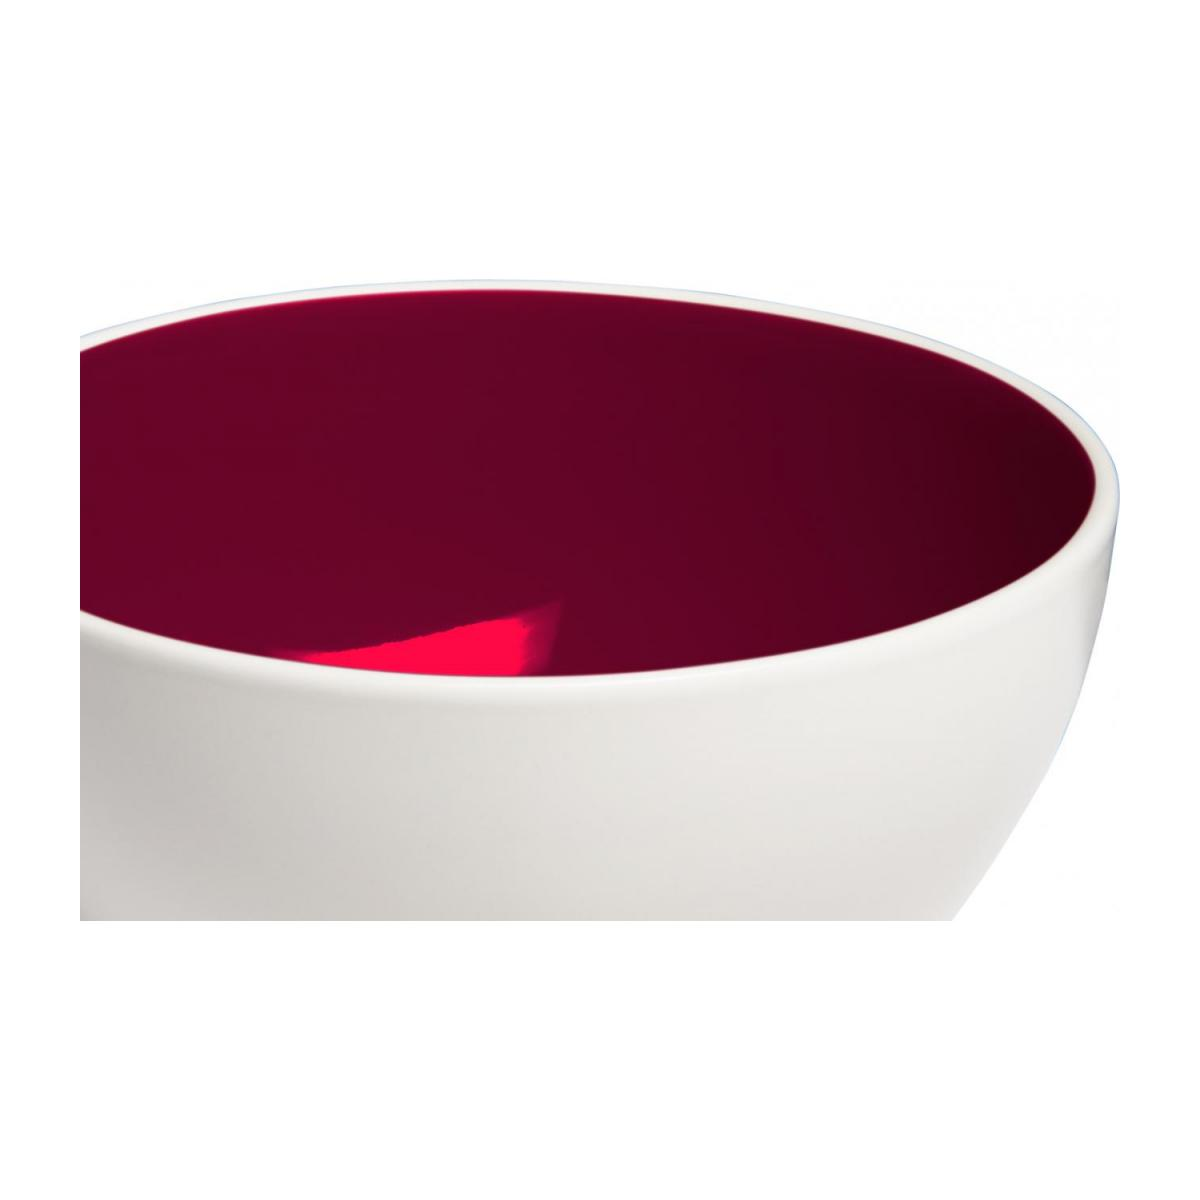 Bowl made of sandstone, white and burgundy n°2